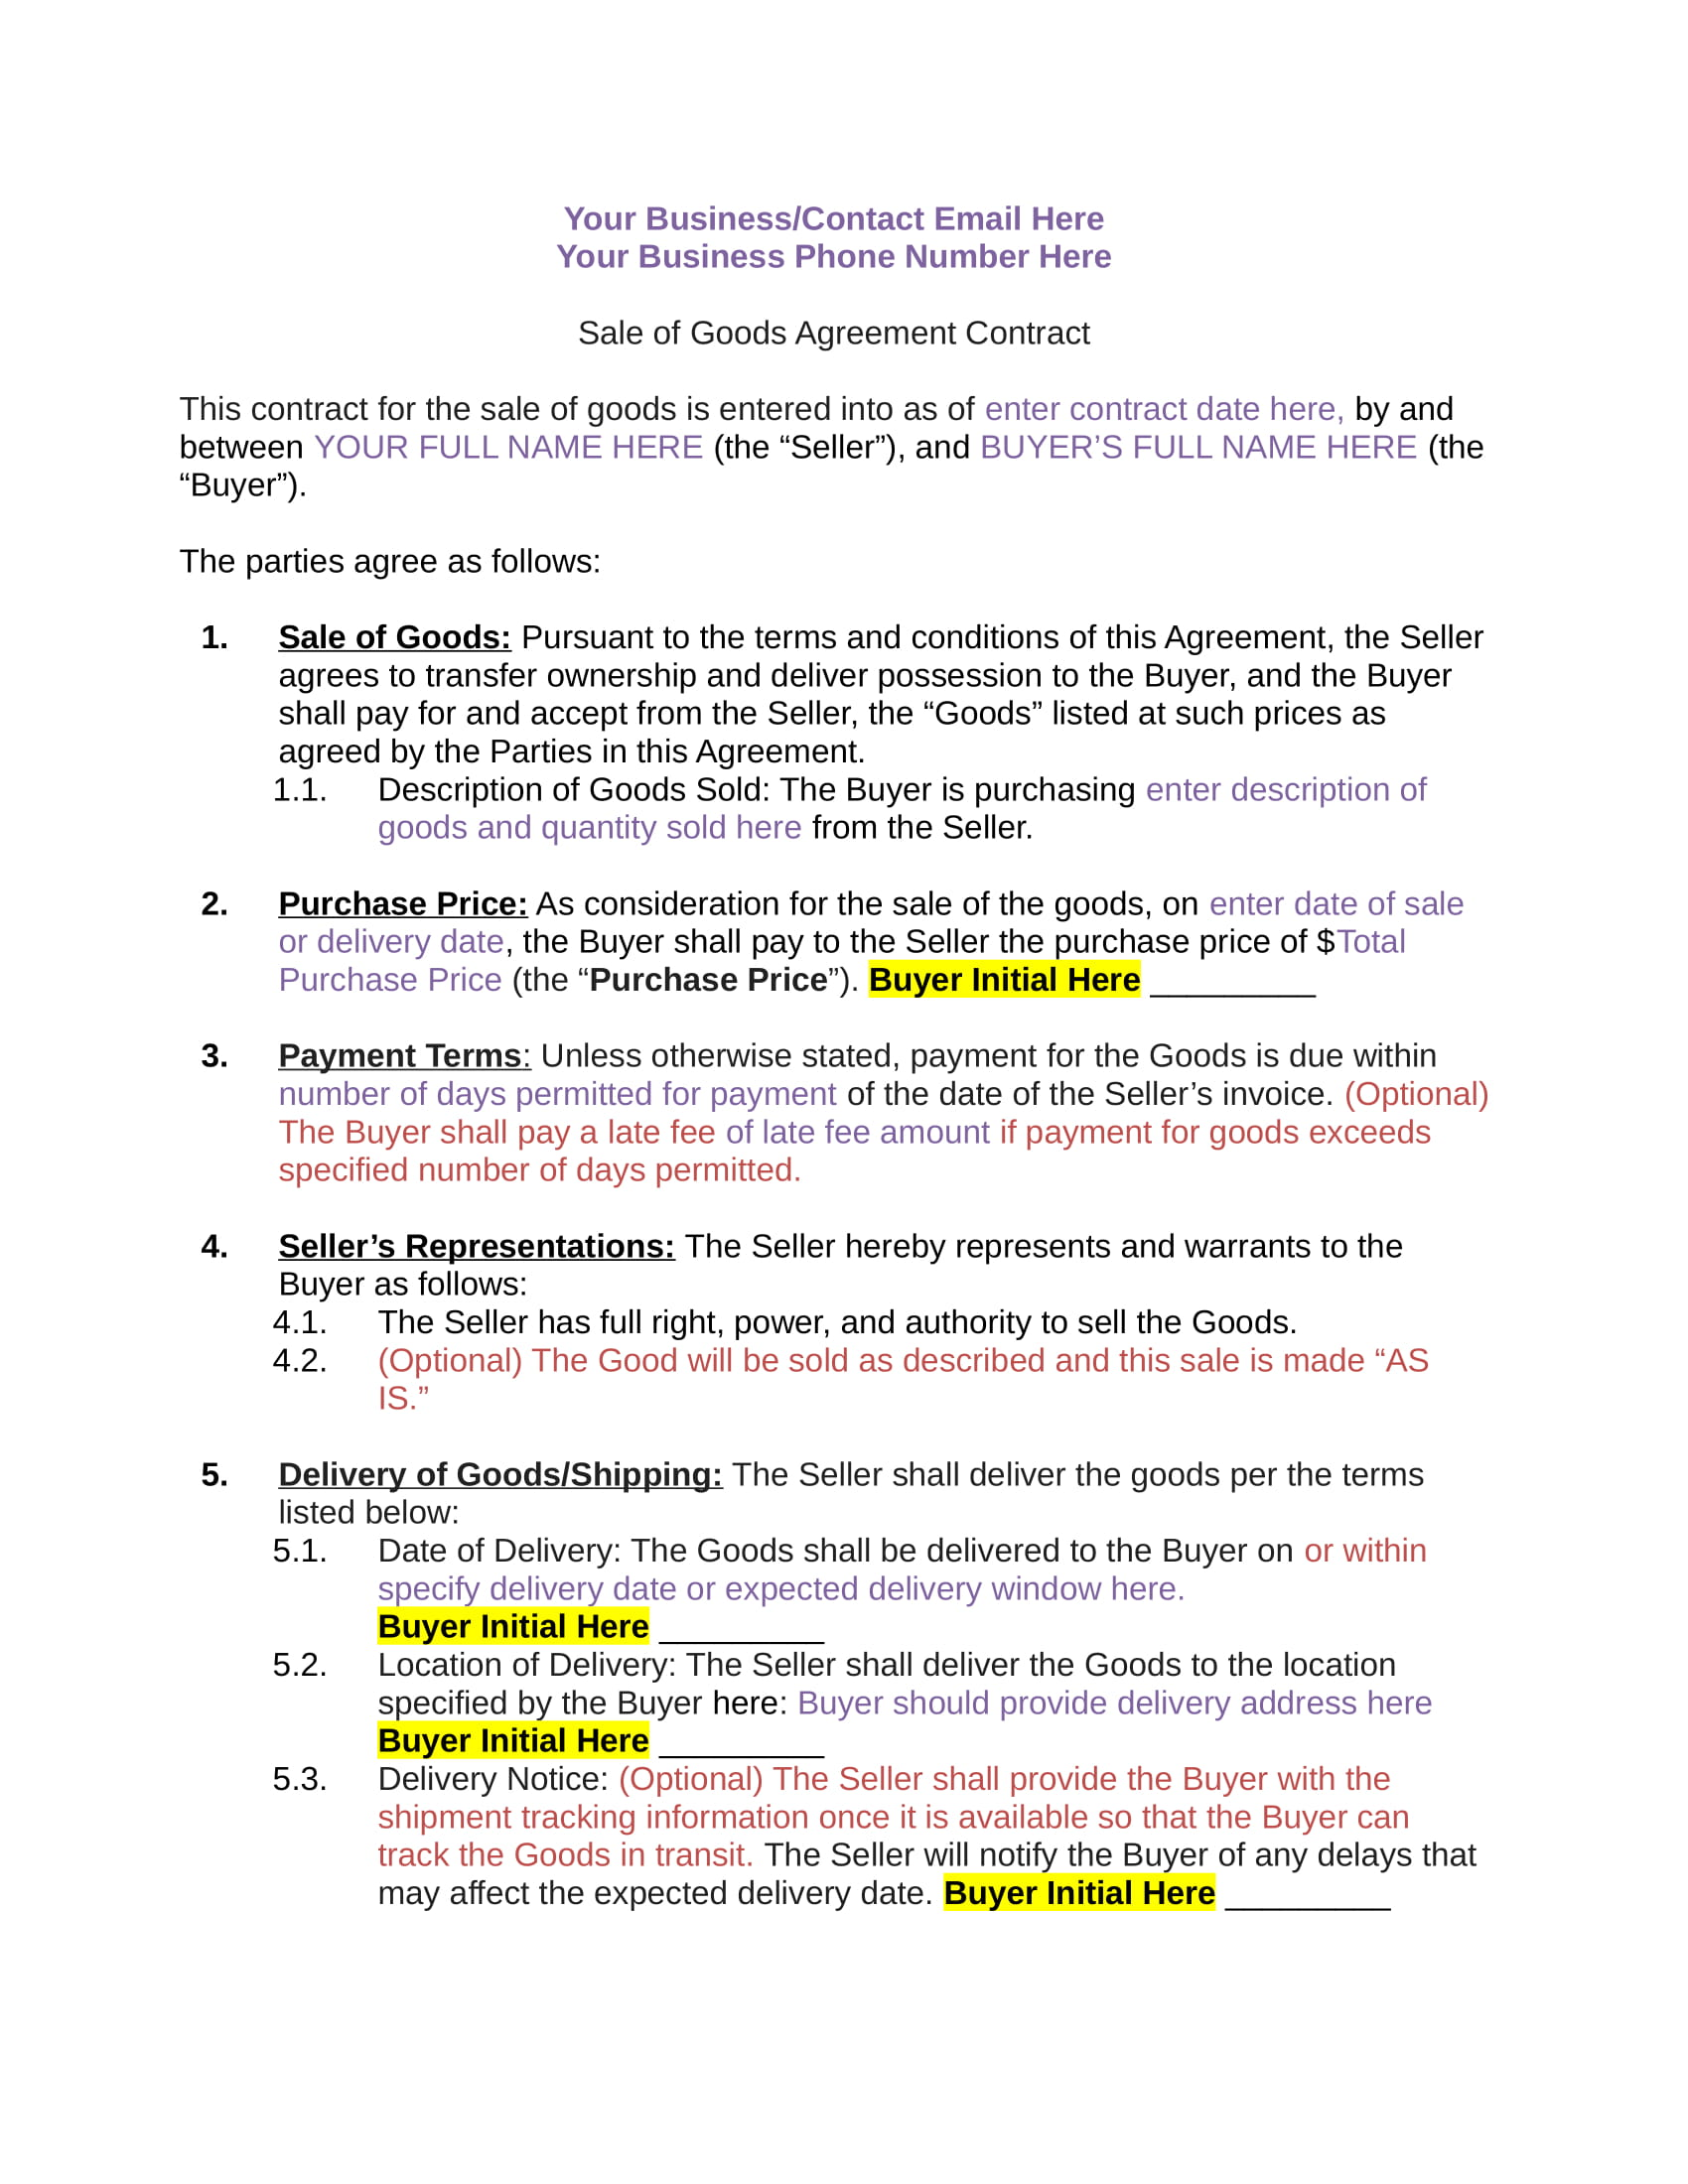 3 sales of goods agreement contract forms pdf doc for Sale of goods agreement template